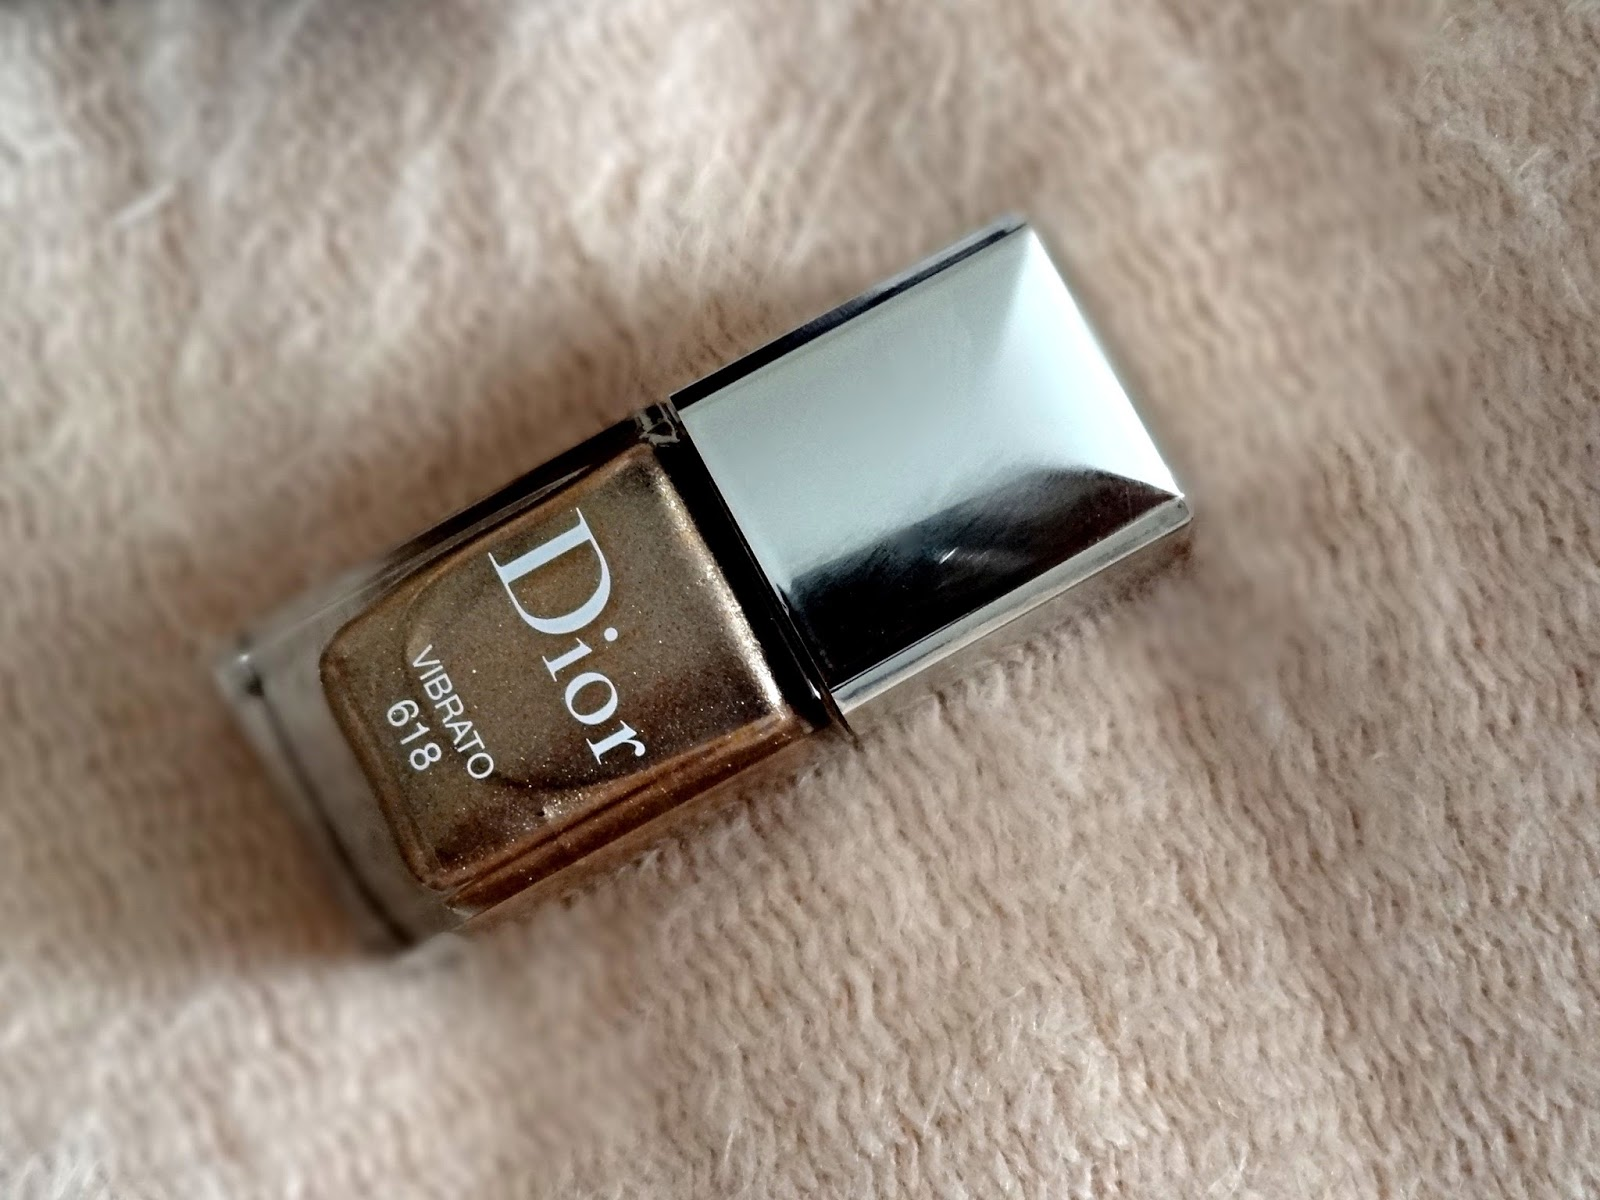 Dior Vernis Vibrato 618 Review, Photos & Swatches